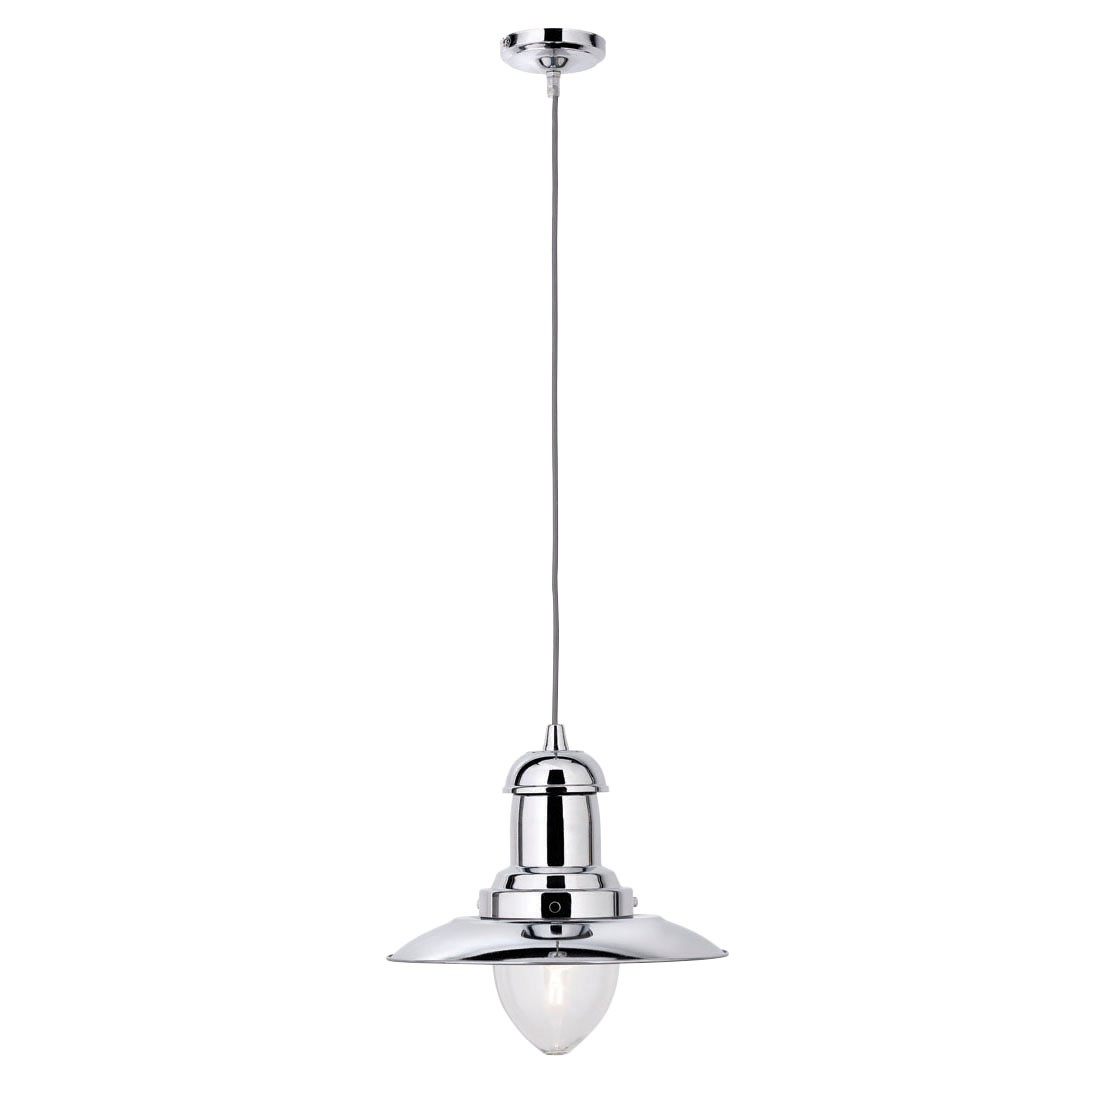 FISHERMAN CHROME CEILING LIGHT WITH CLEAR GLASS SHADE 4301cc